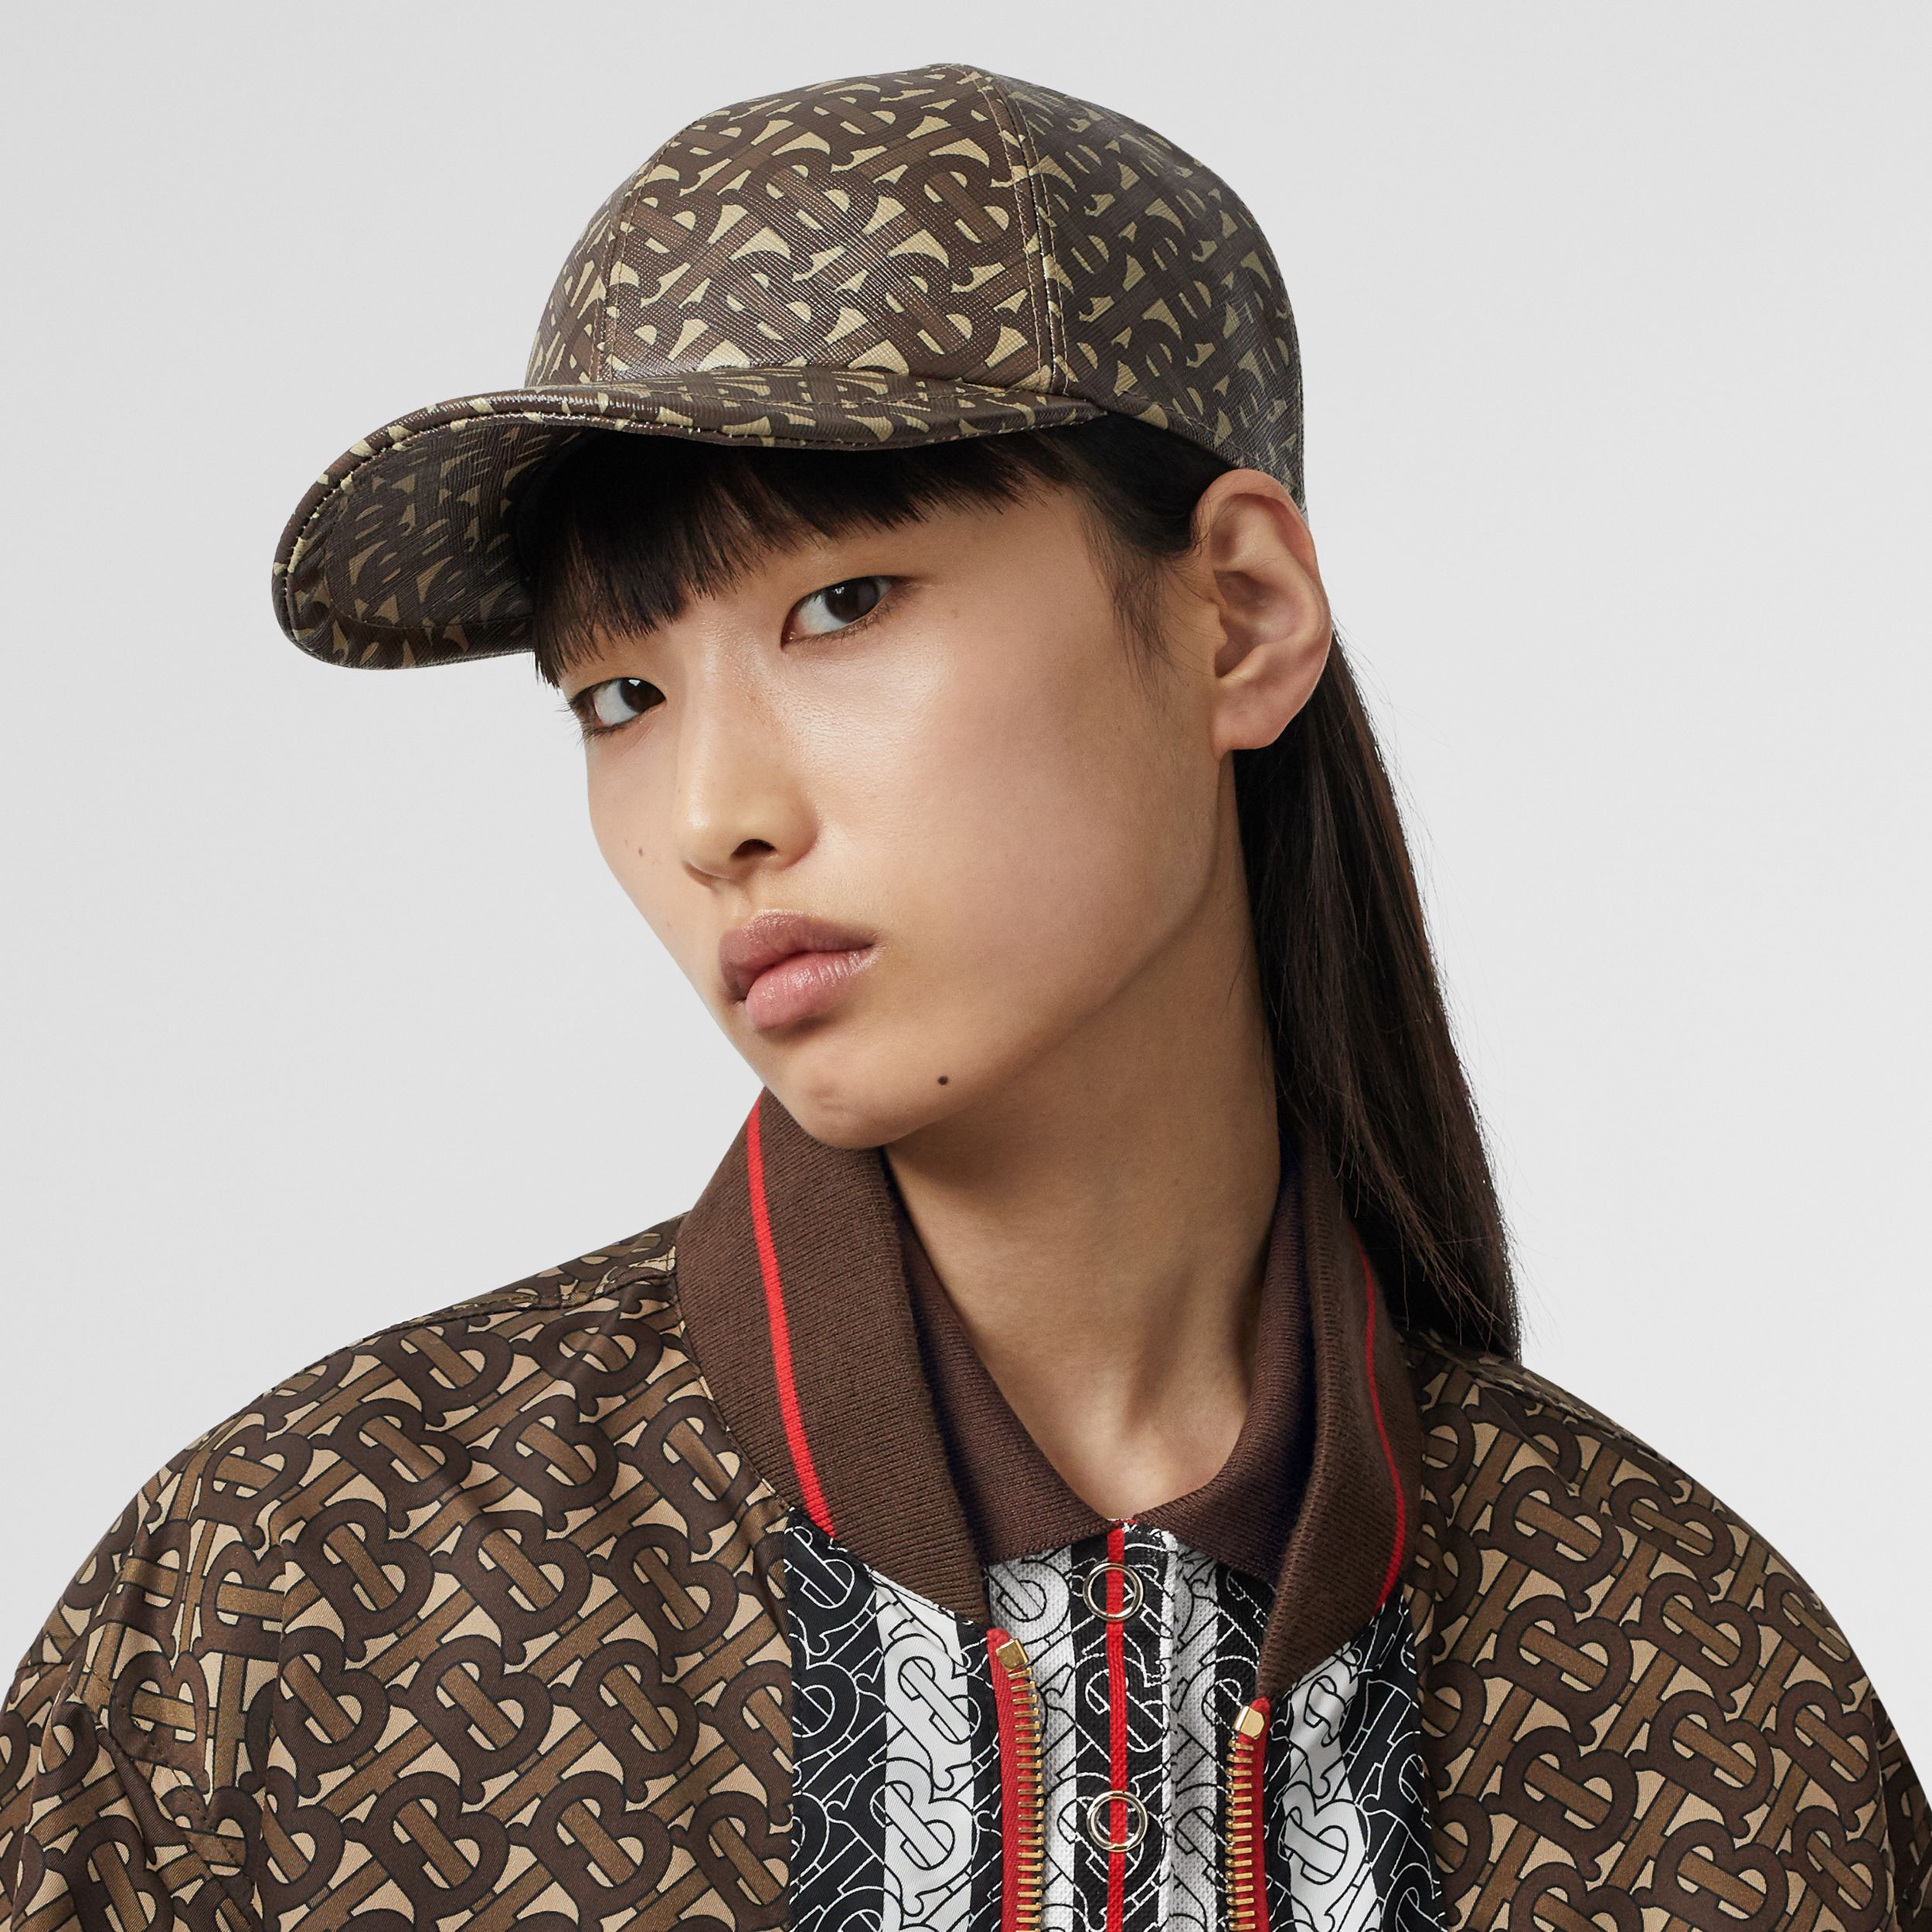 Monogram Print Baseball Cap in Bridle Brown | Burberry - 3